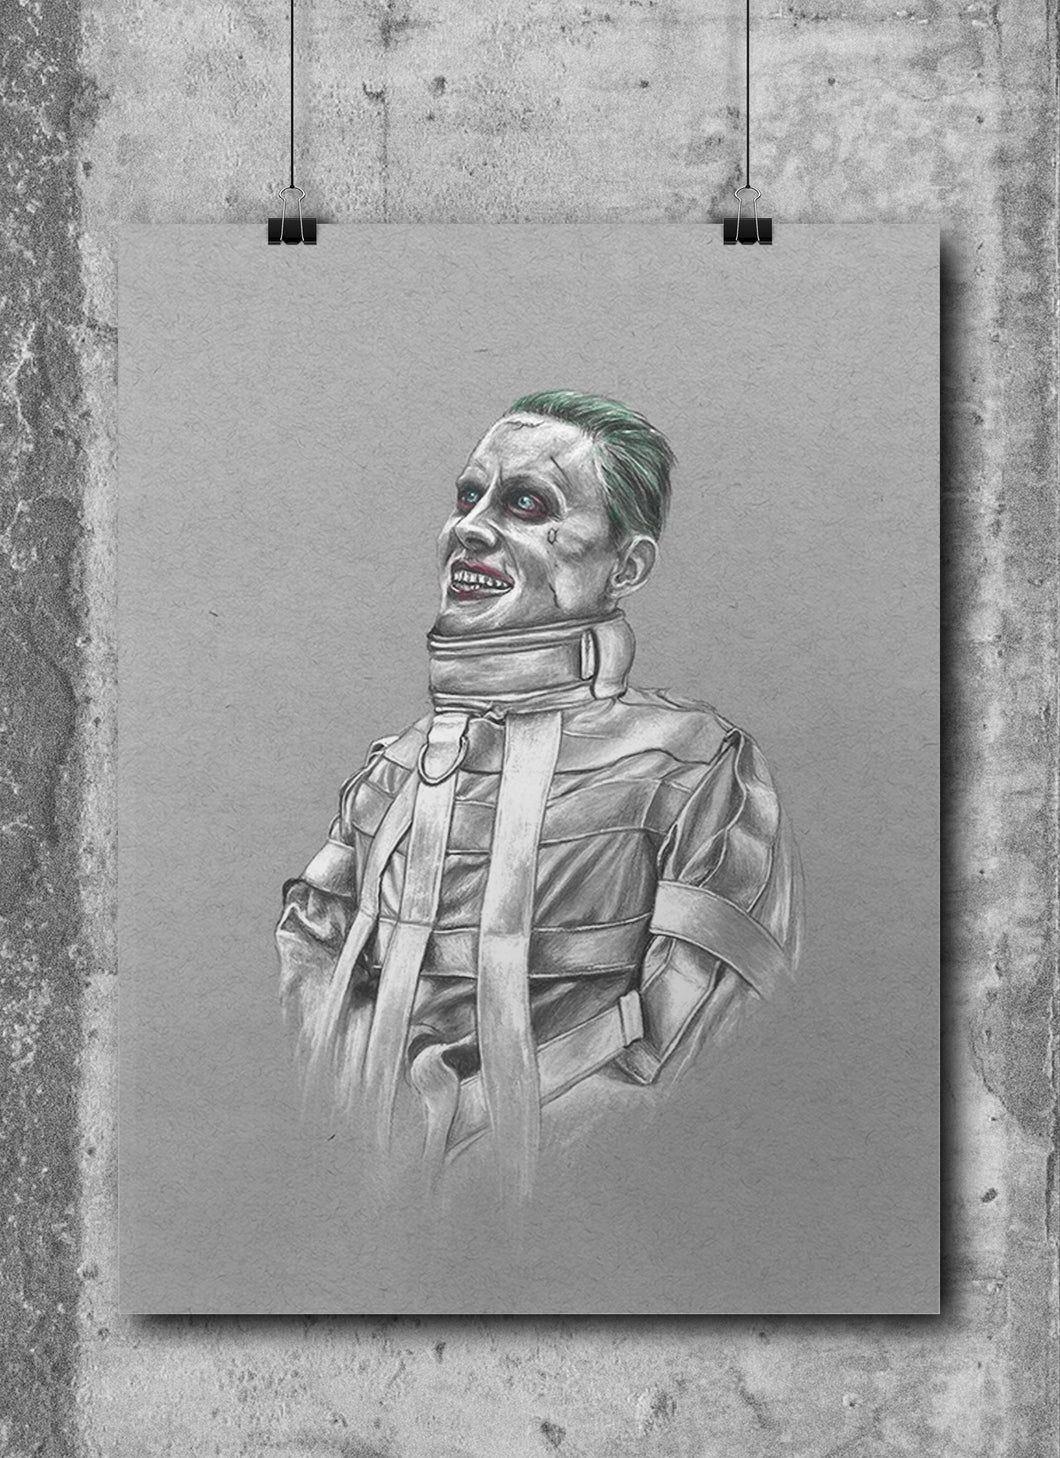 Joker/Jared Leto/Limited Edition/Hand Drawing by Wil Shrike